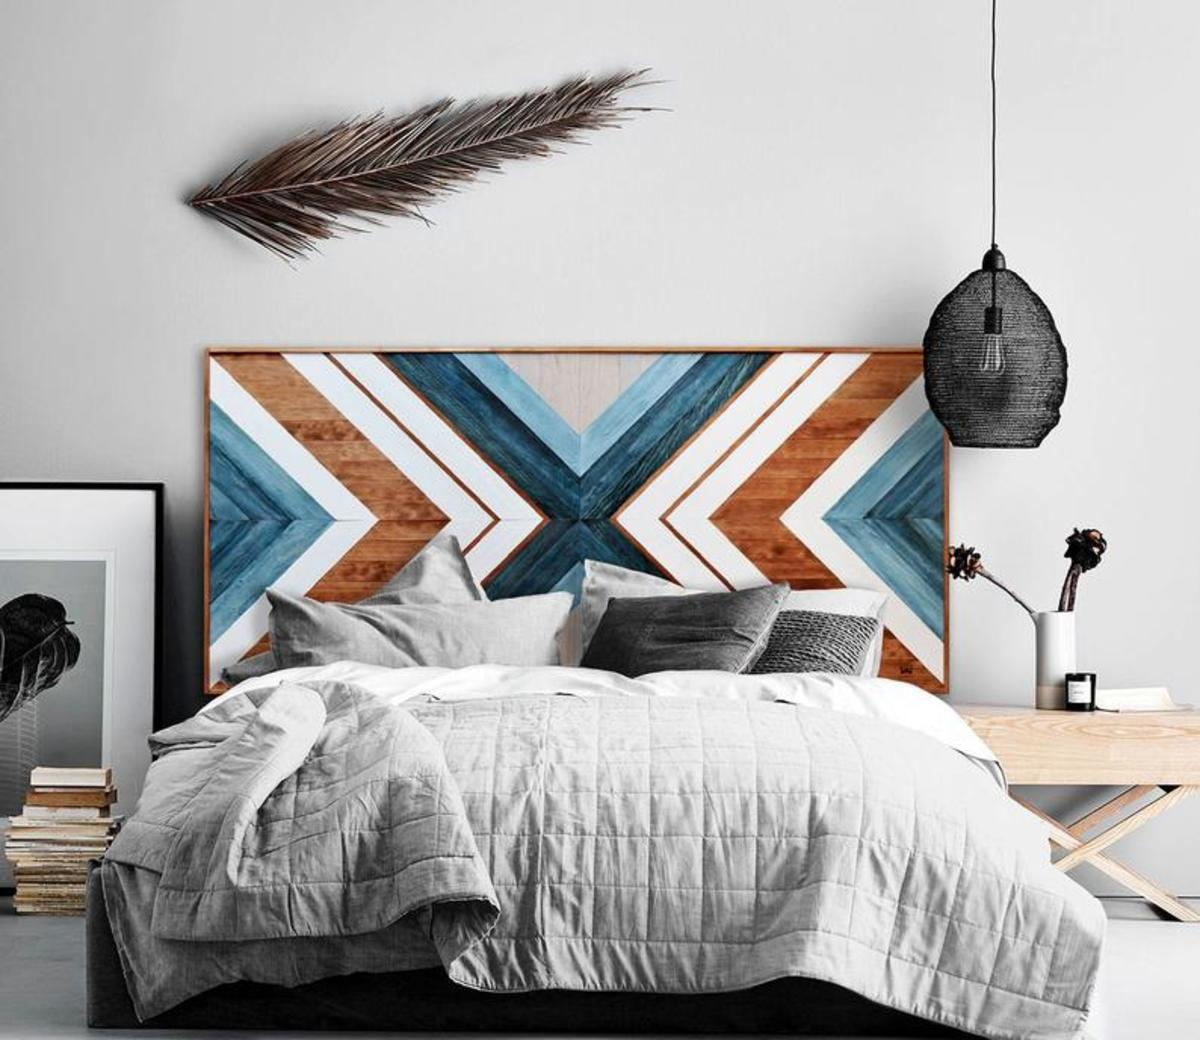 Strong wild pine wood is used to create this unique wooden headboard. They are cut, sanded, painted and dyed by hand.